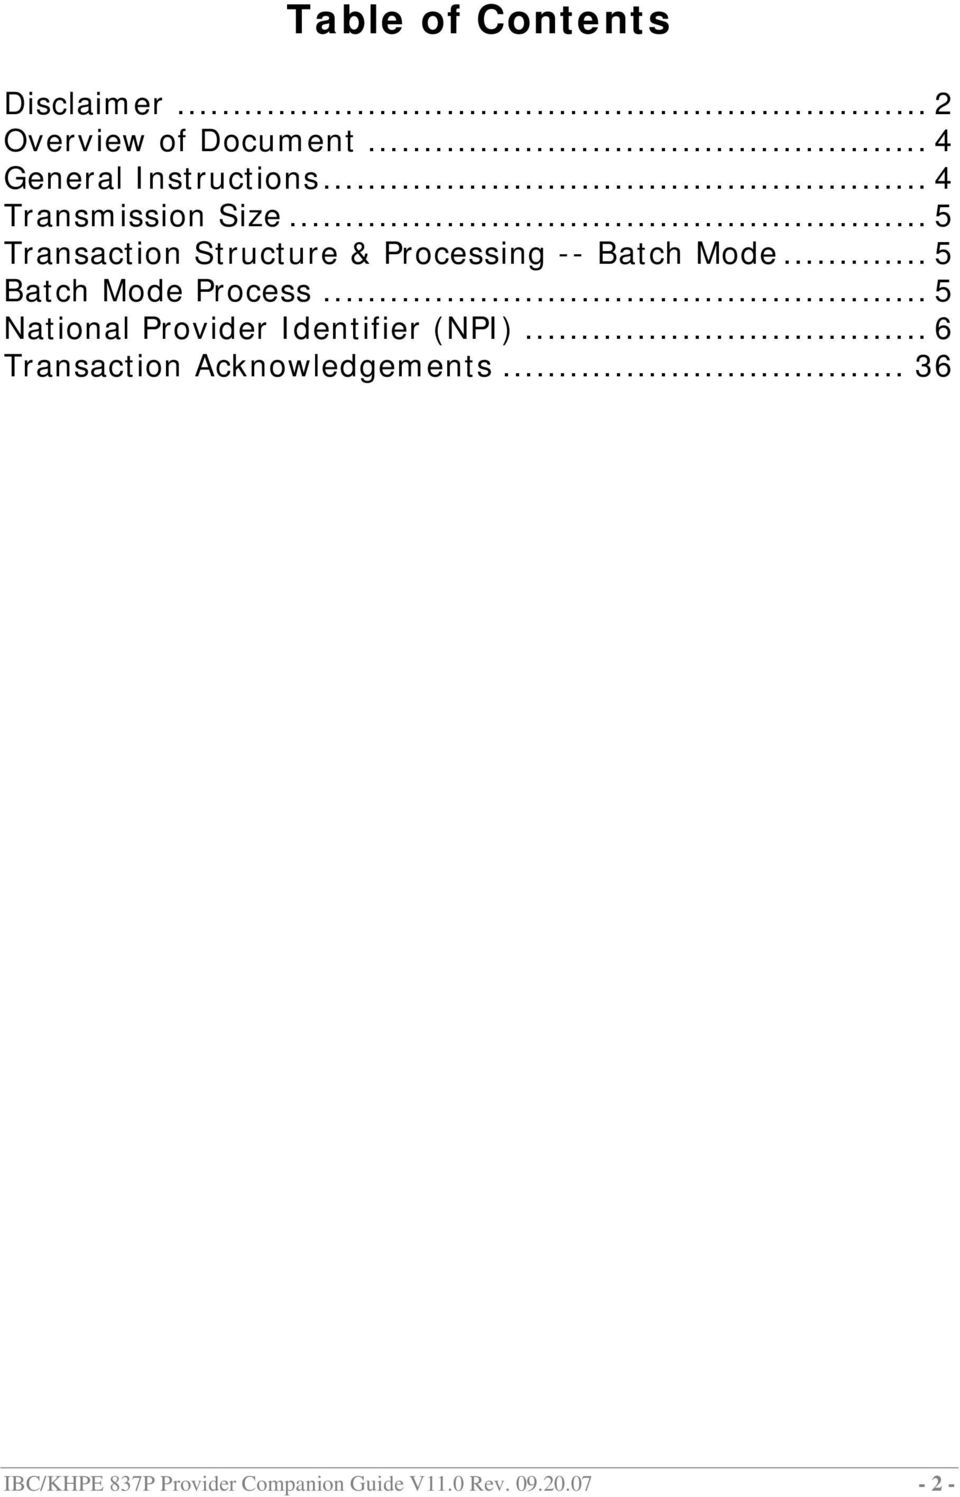 .. 5 Batch Mode Process... 5 National Provider Identifier (NPI).